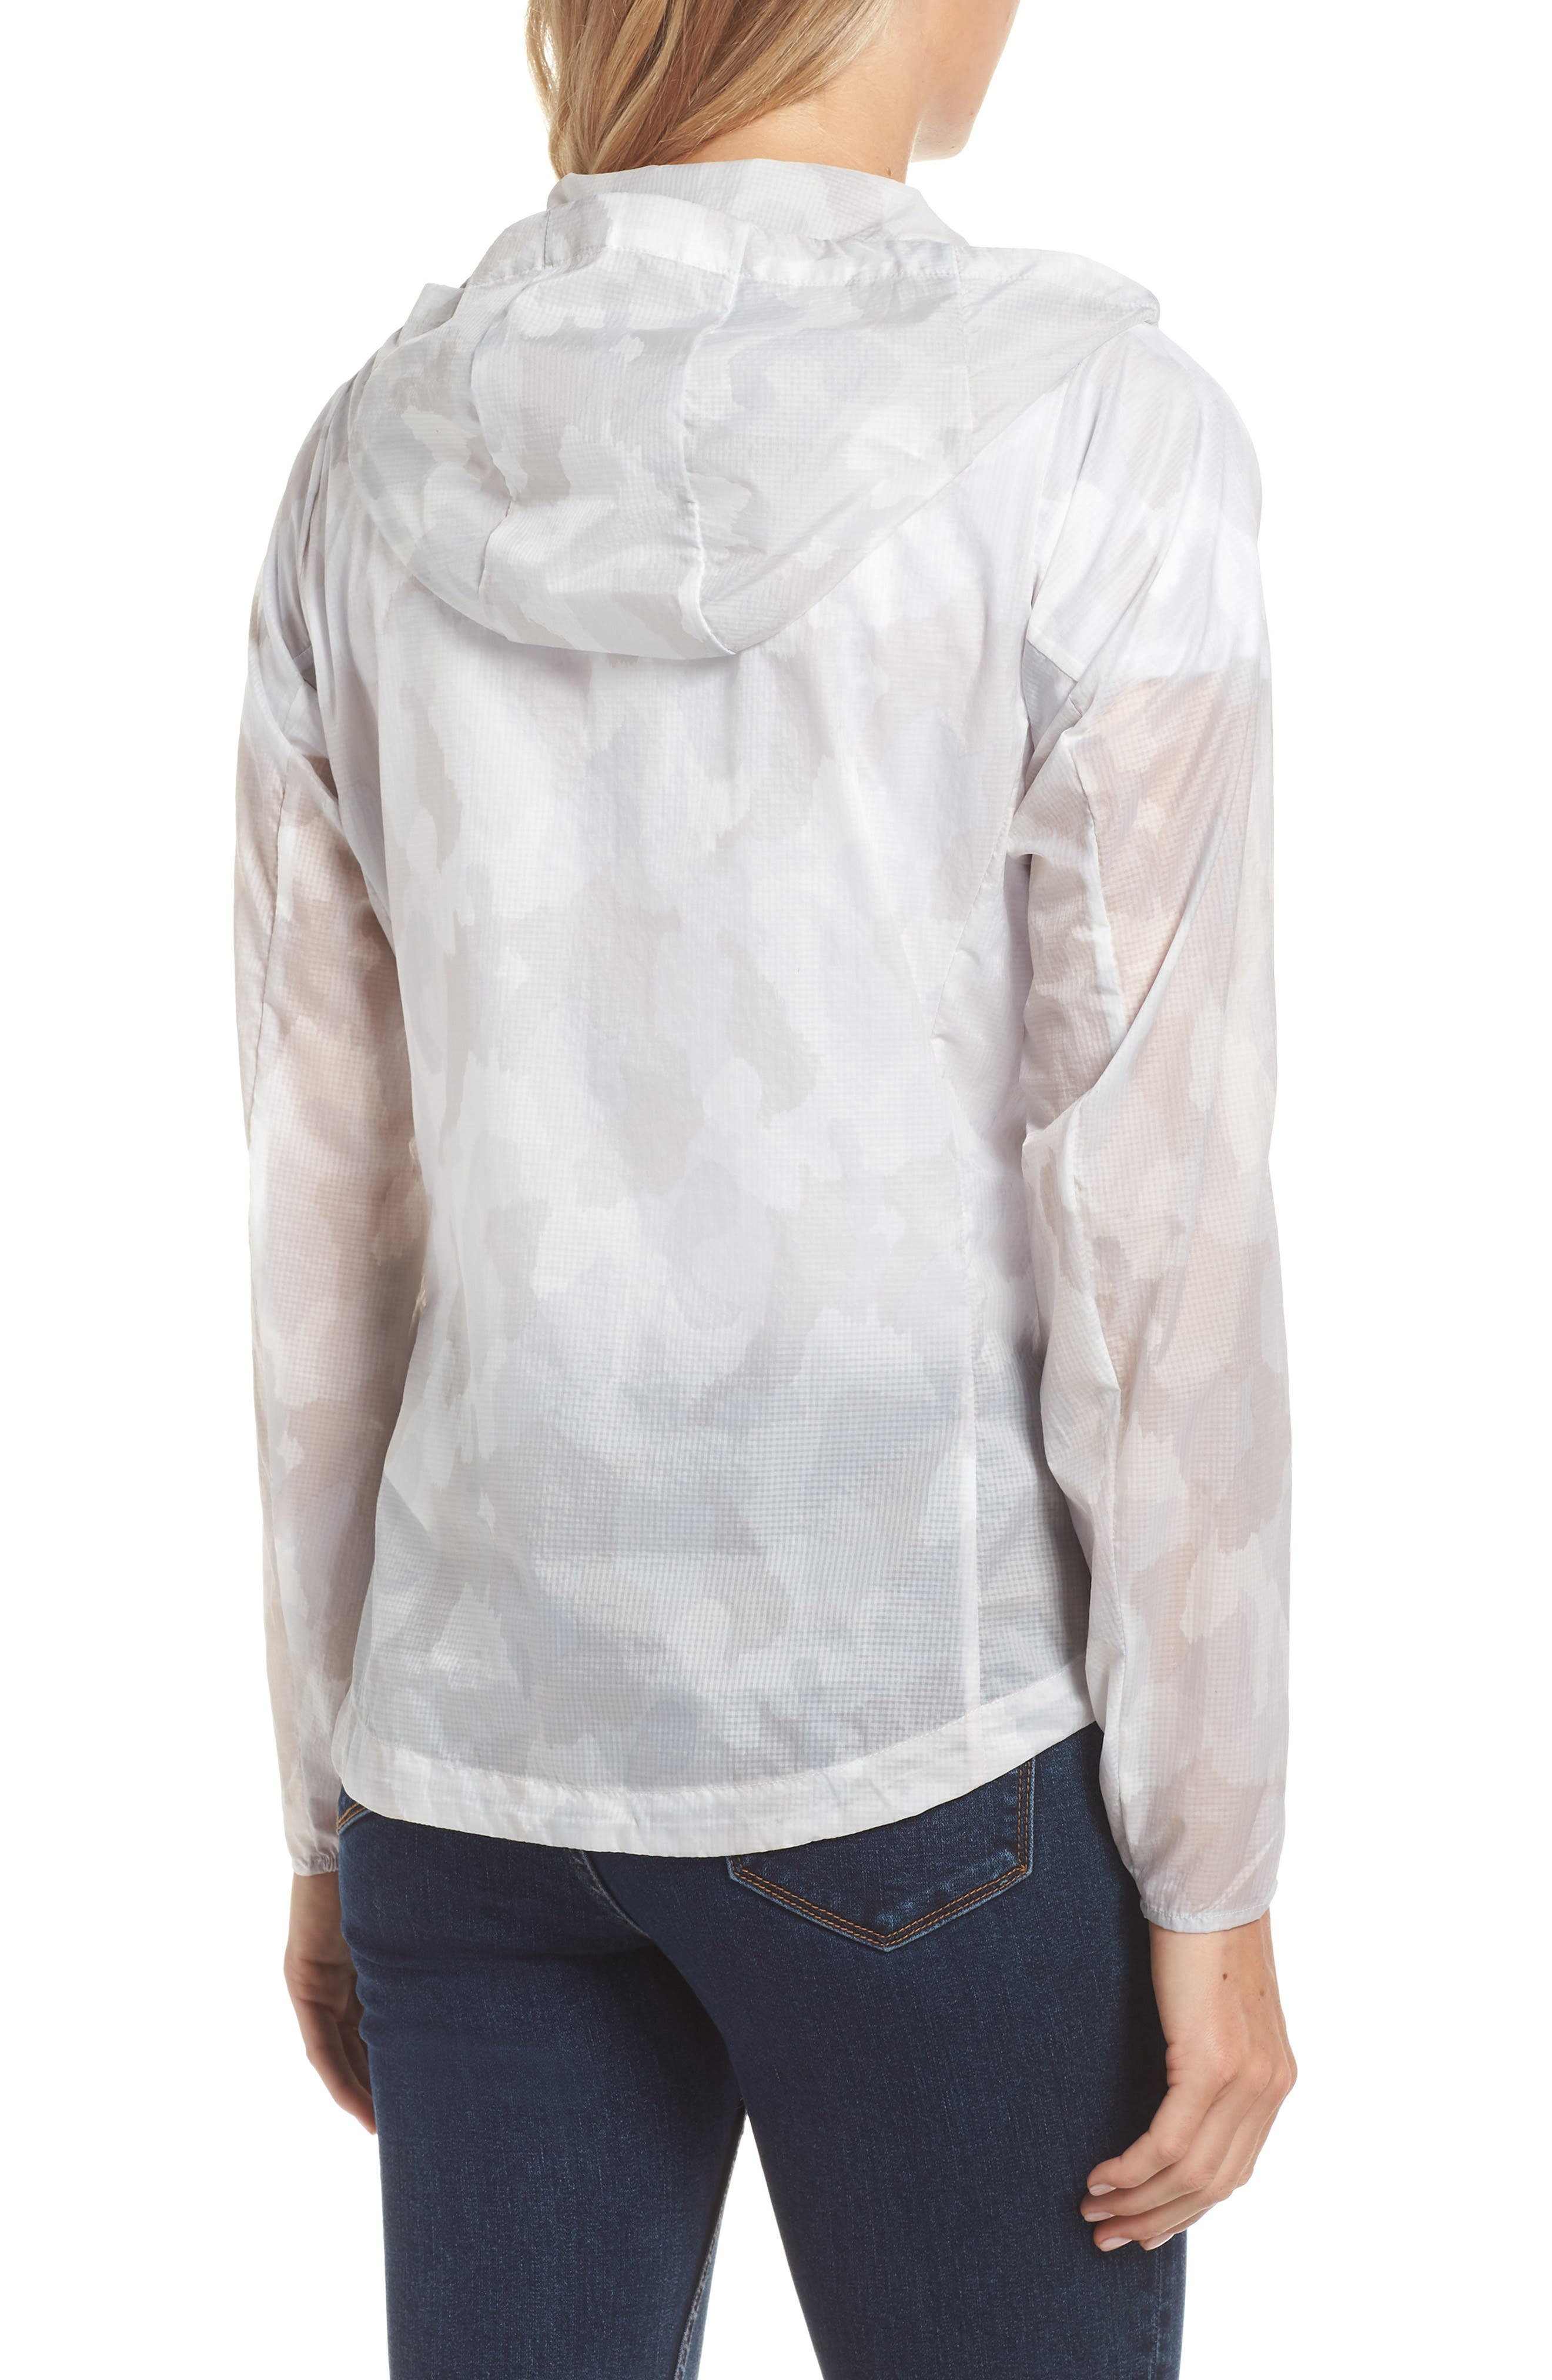 Houdini Water Repellent Jacket,                             Alternate thumbnail 2, color,                             BUNKER CAMO TAILORED GREY